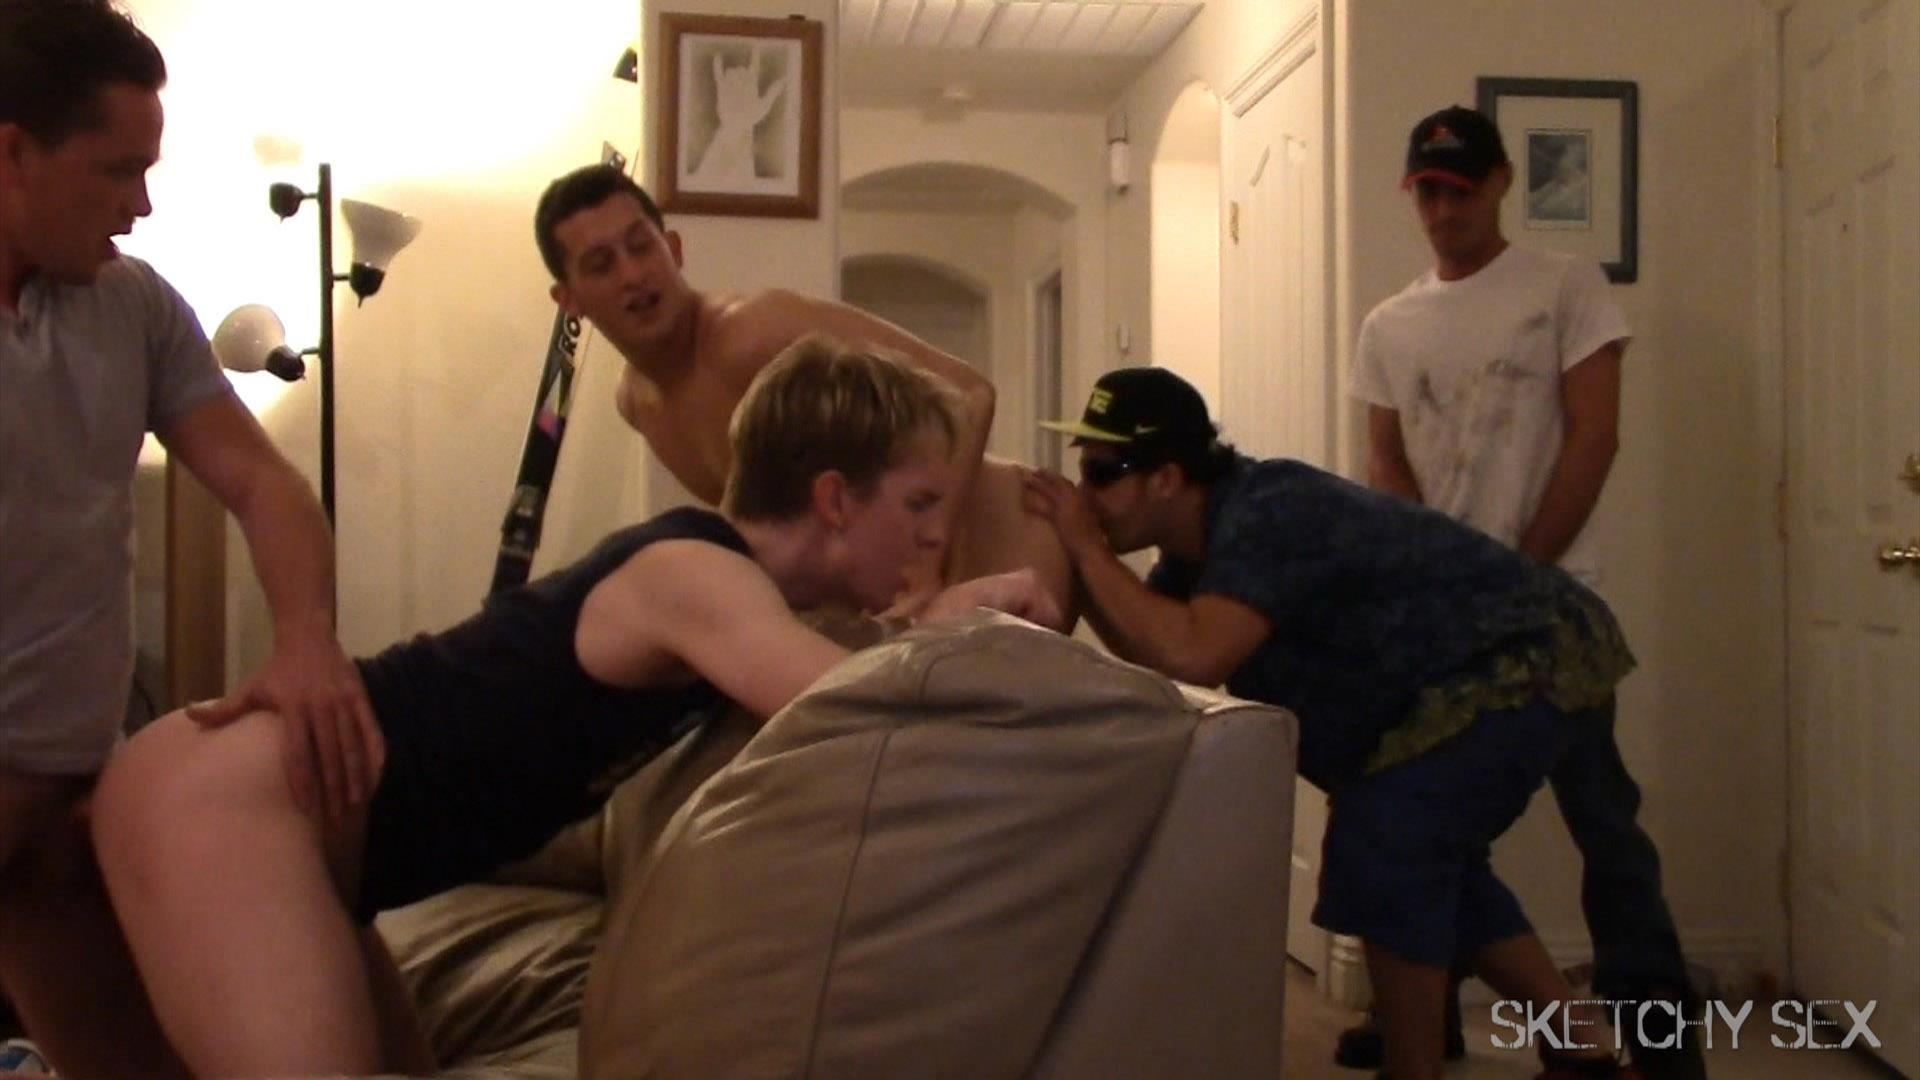 Sketchy Sex Anonymous Bareback Sex Party Amateur Gay Porn 02 What Happens When 2 Bottoms Host An Anonymous Bareback Sex Party?